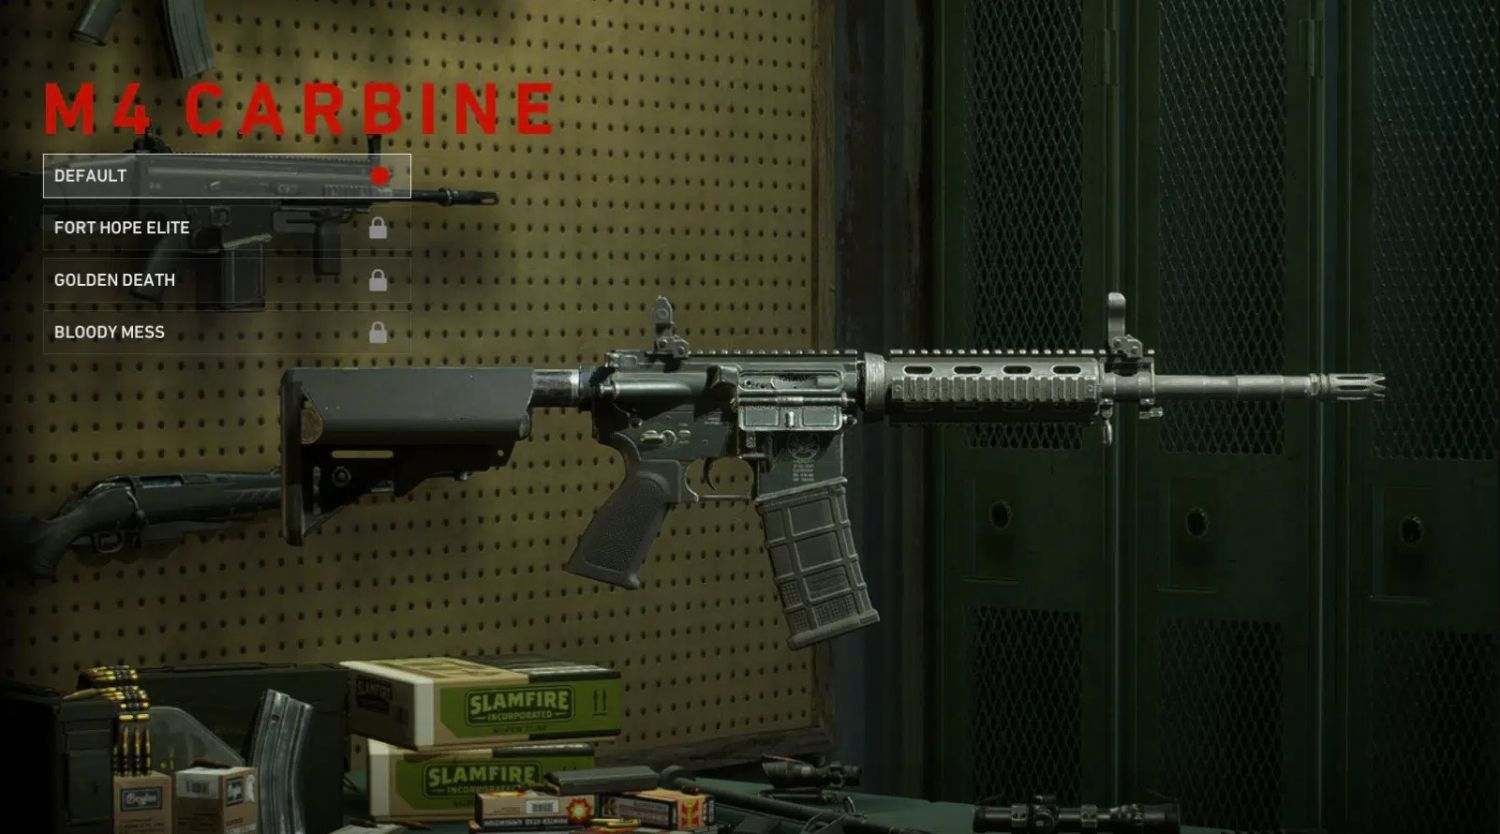 Back 4 Blood – Best Weapons Guide - M4 Carbine